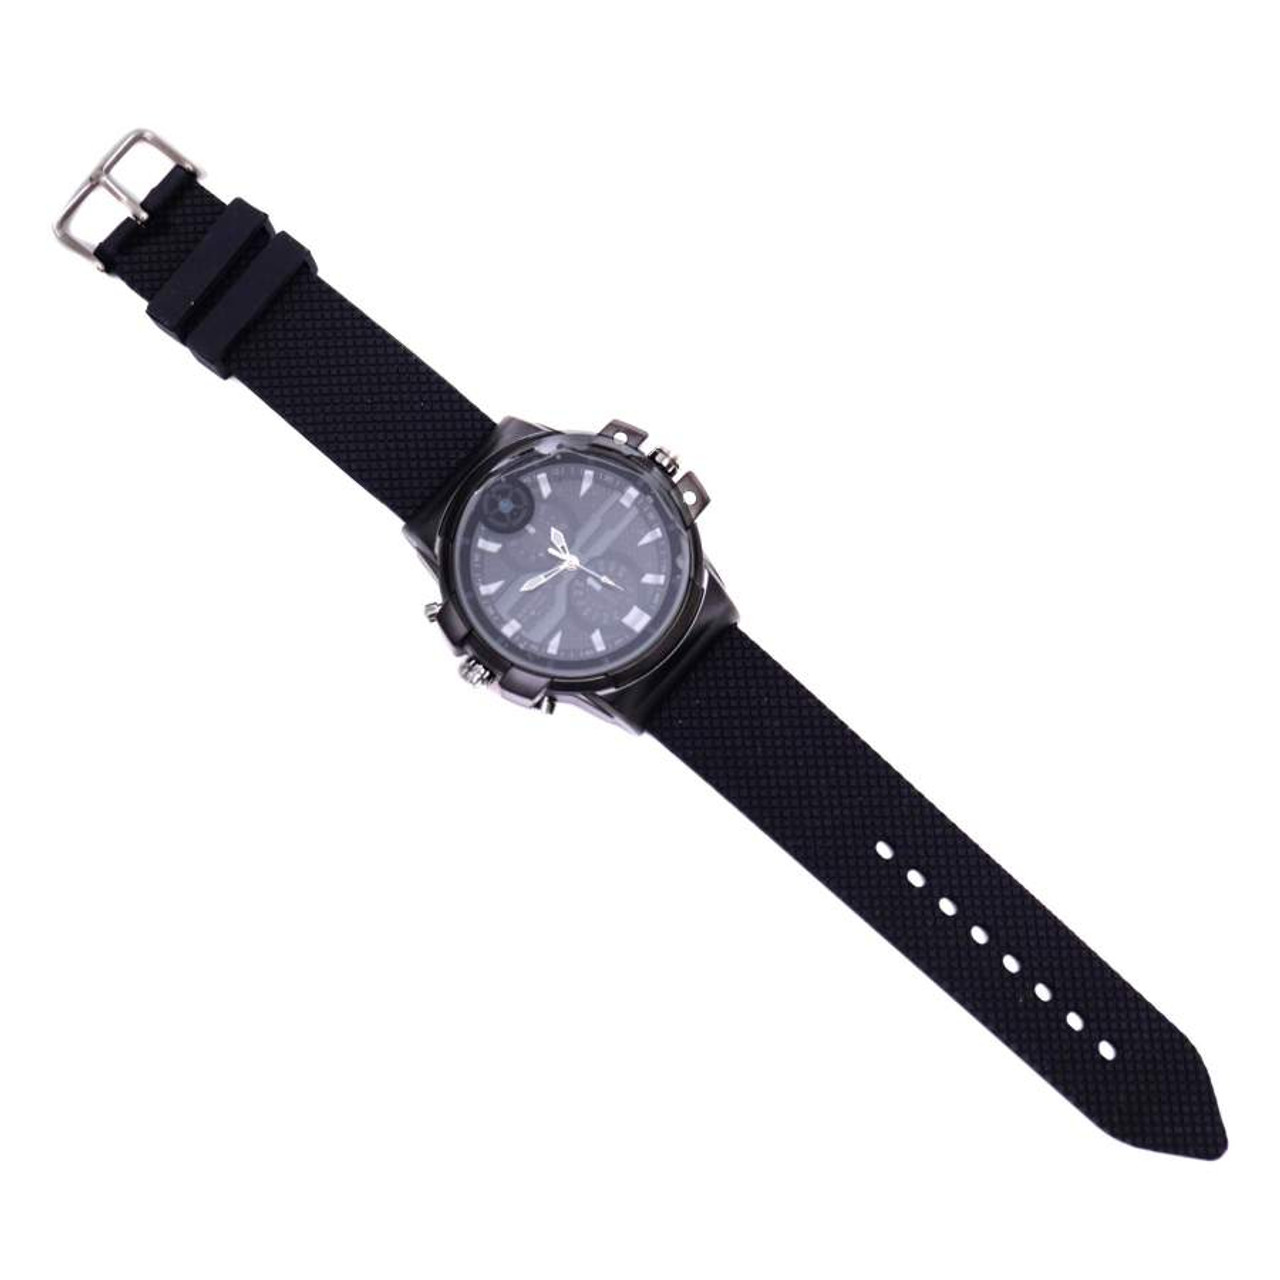 2K Watch with Hidden Spy Camera and Recorder